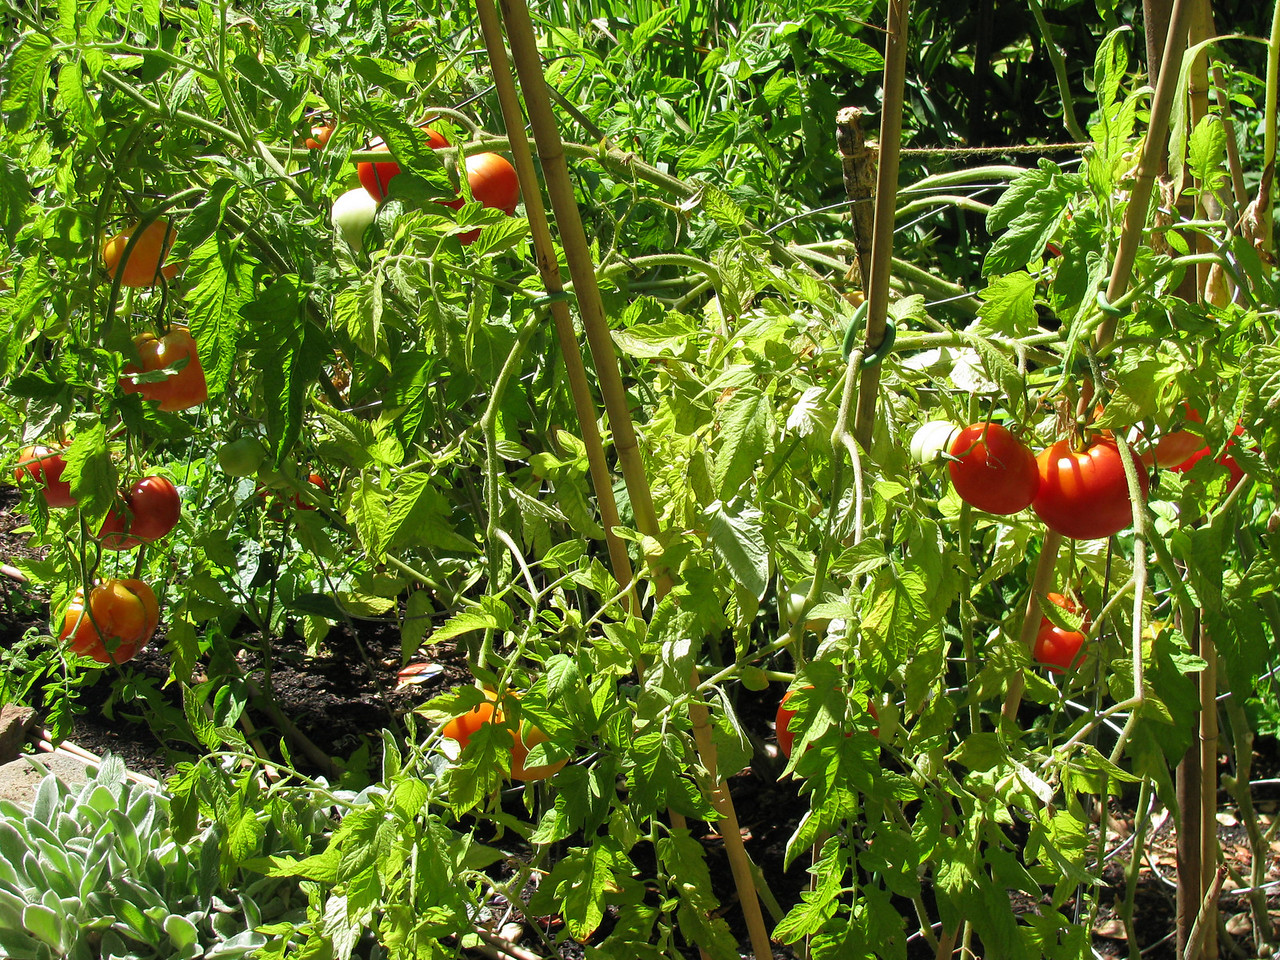 More tomatoes!